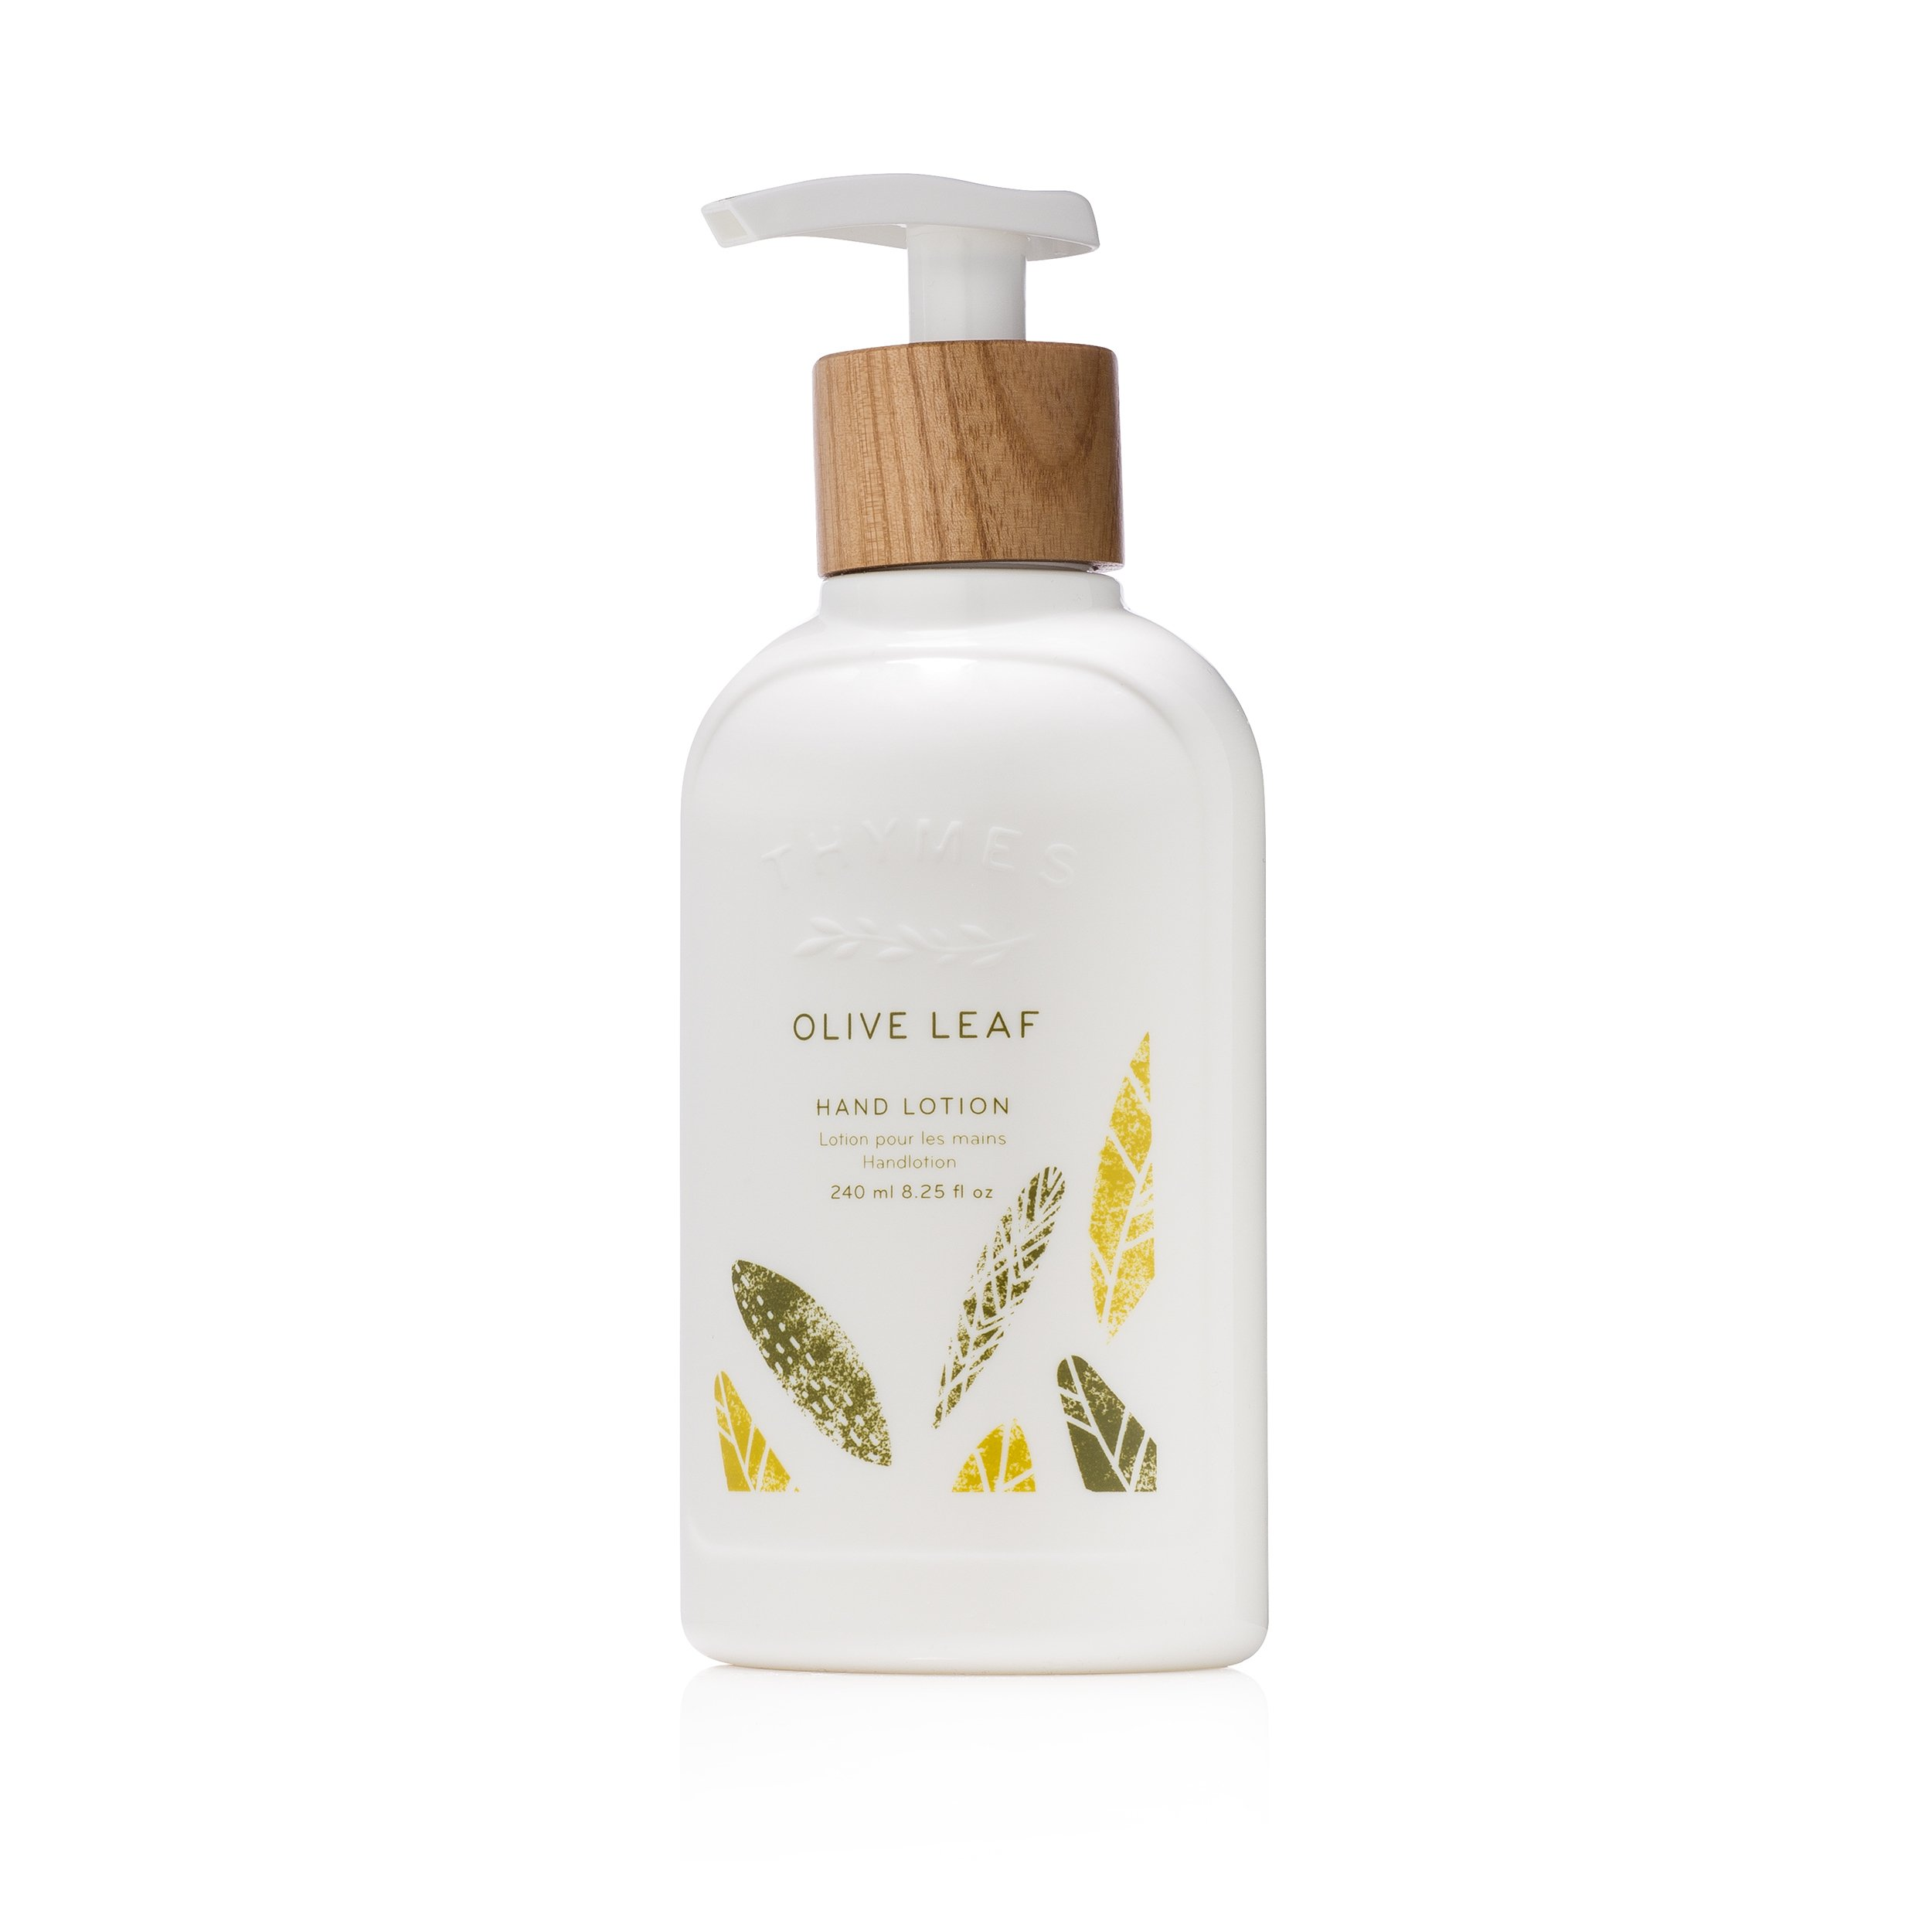 Thymes - Olive Leaf Hand Lotion with Pump - With Moisturizing Shea Butter, Vitamin E and Olive Oil - 8.25 oz by Thymes